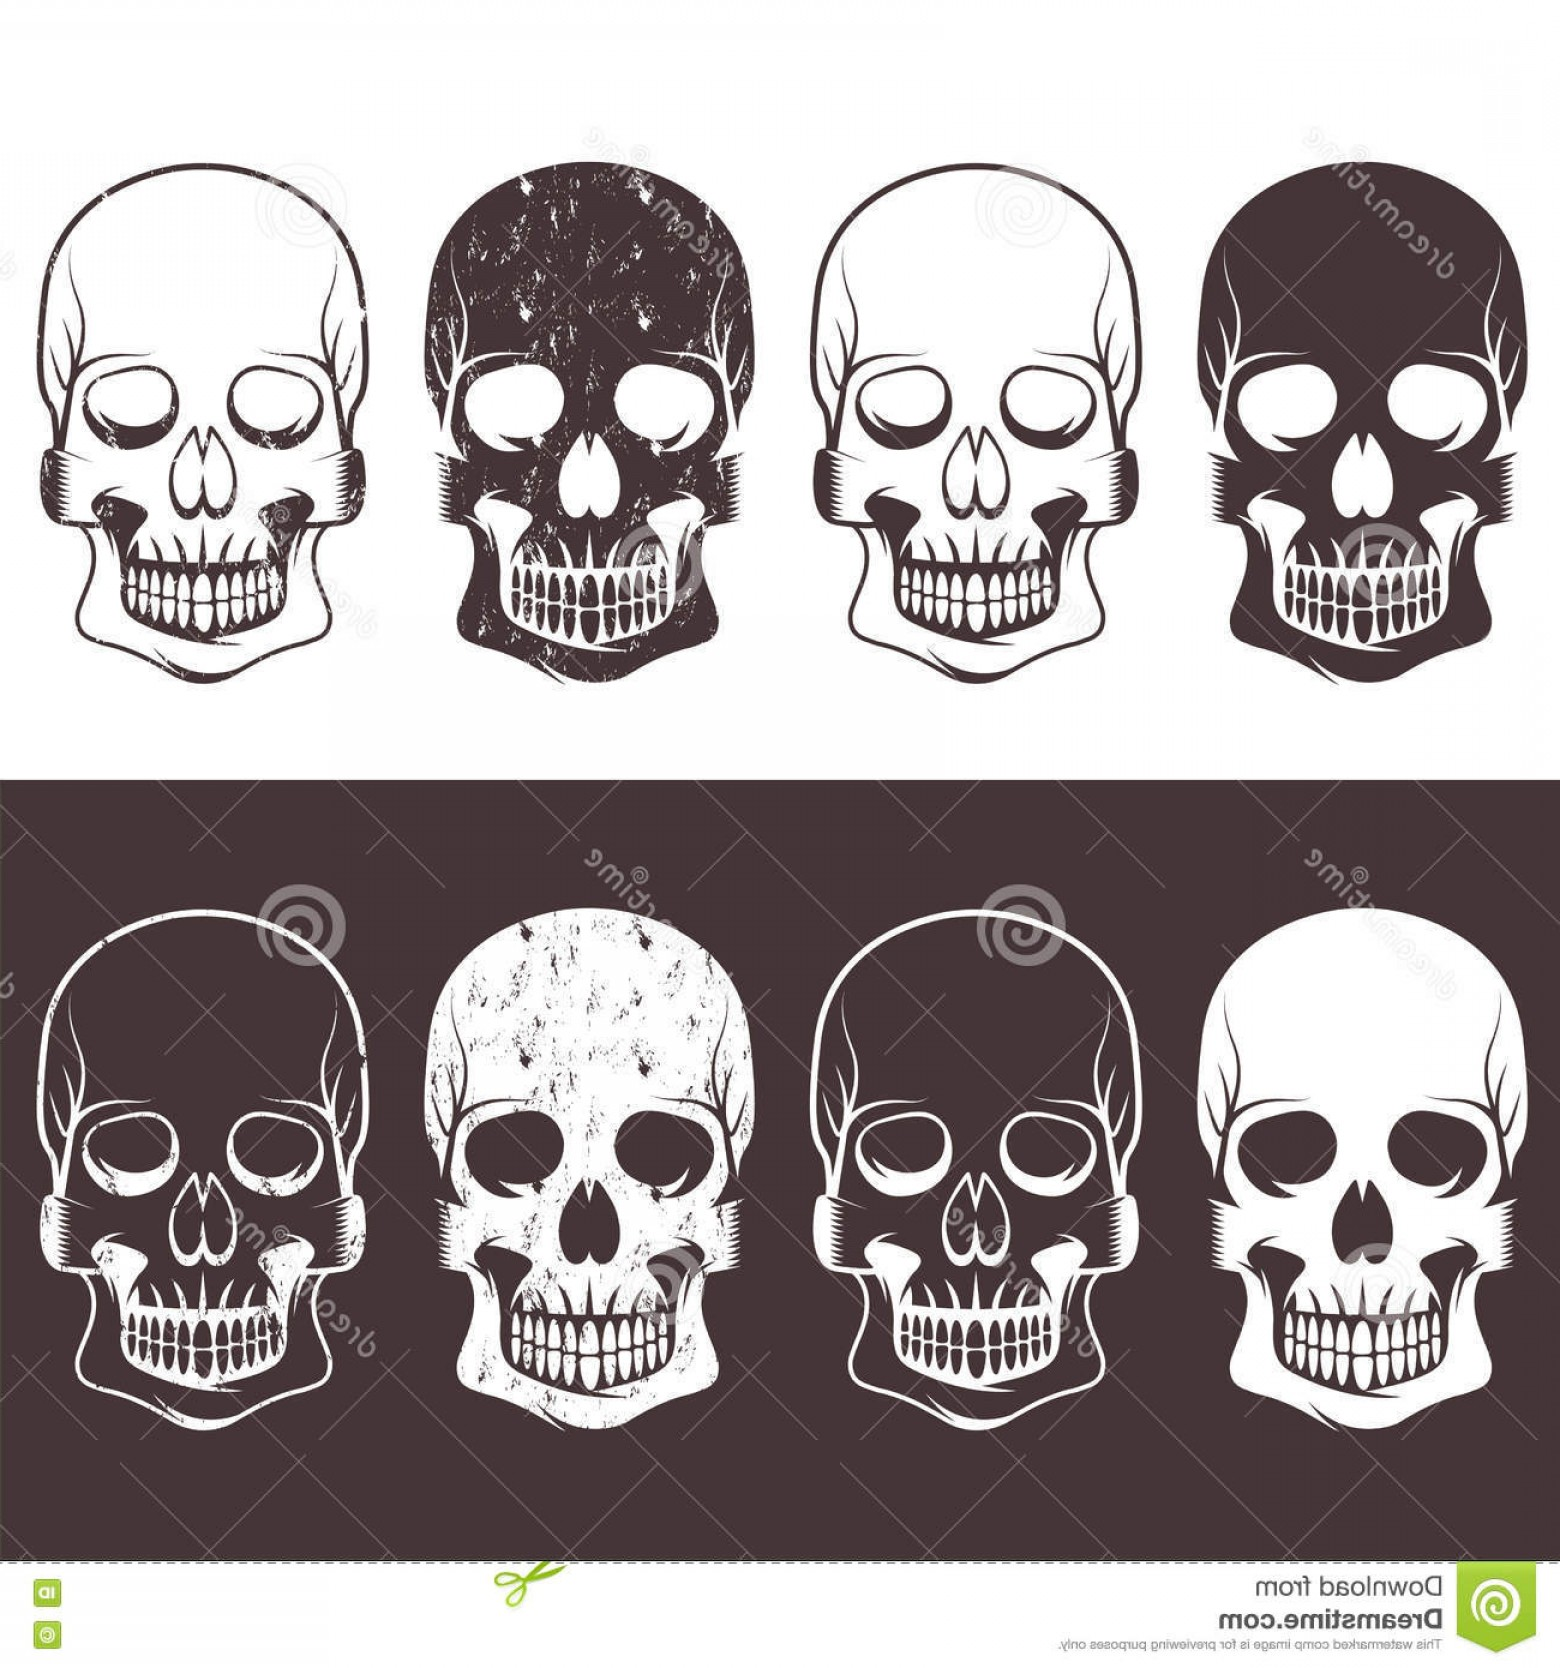 His And Hers Skulls Vector: Stock Illustration Set Aggressive Skulls Vector Design Template Image